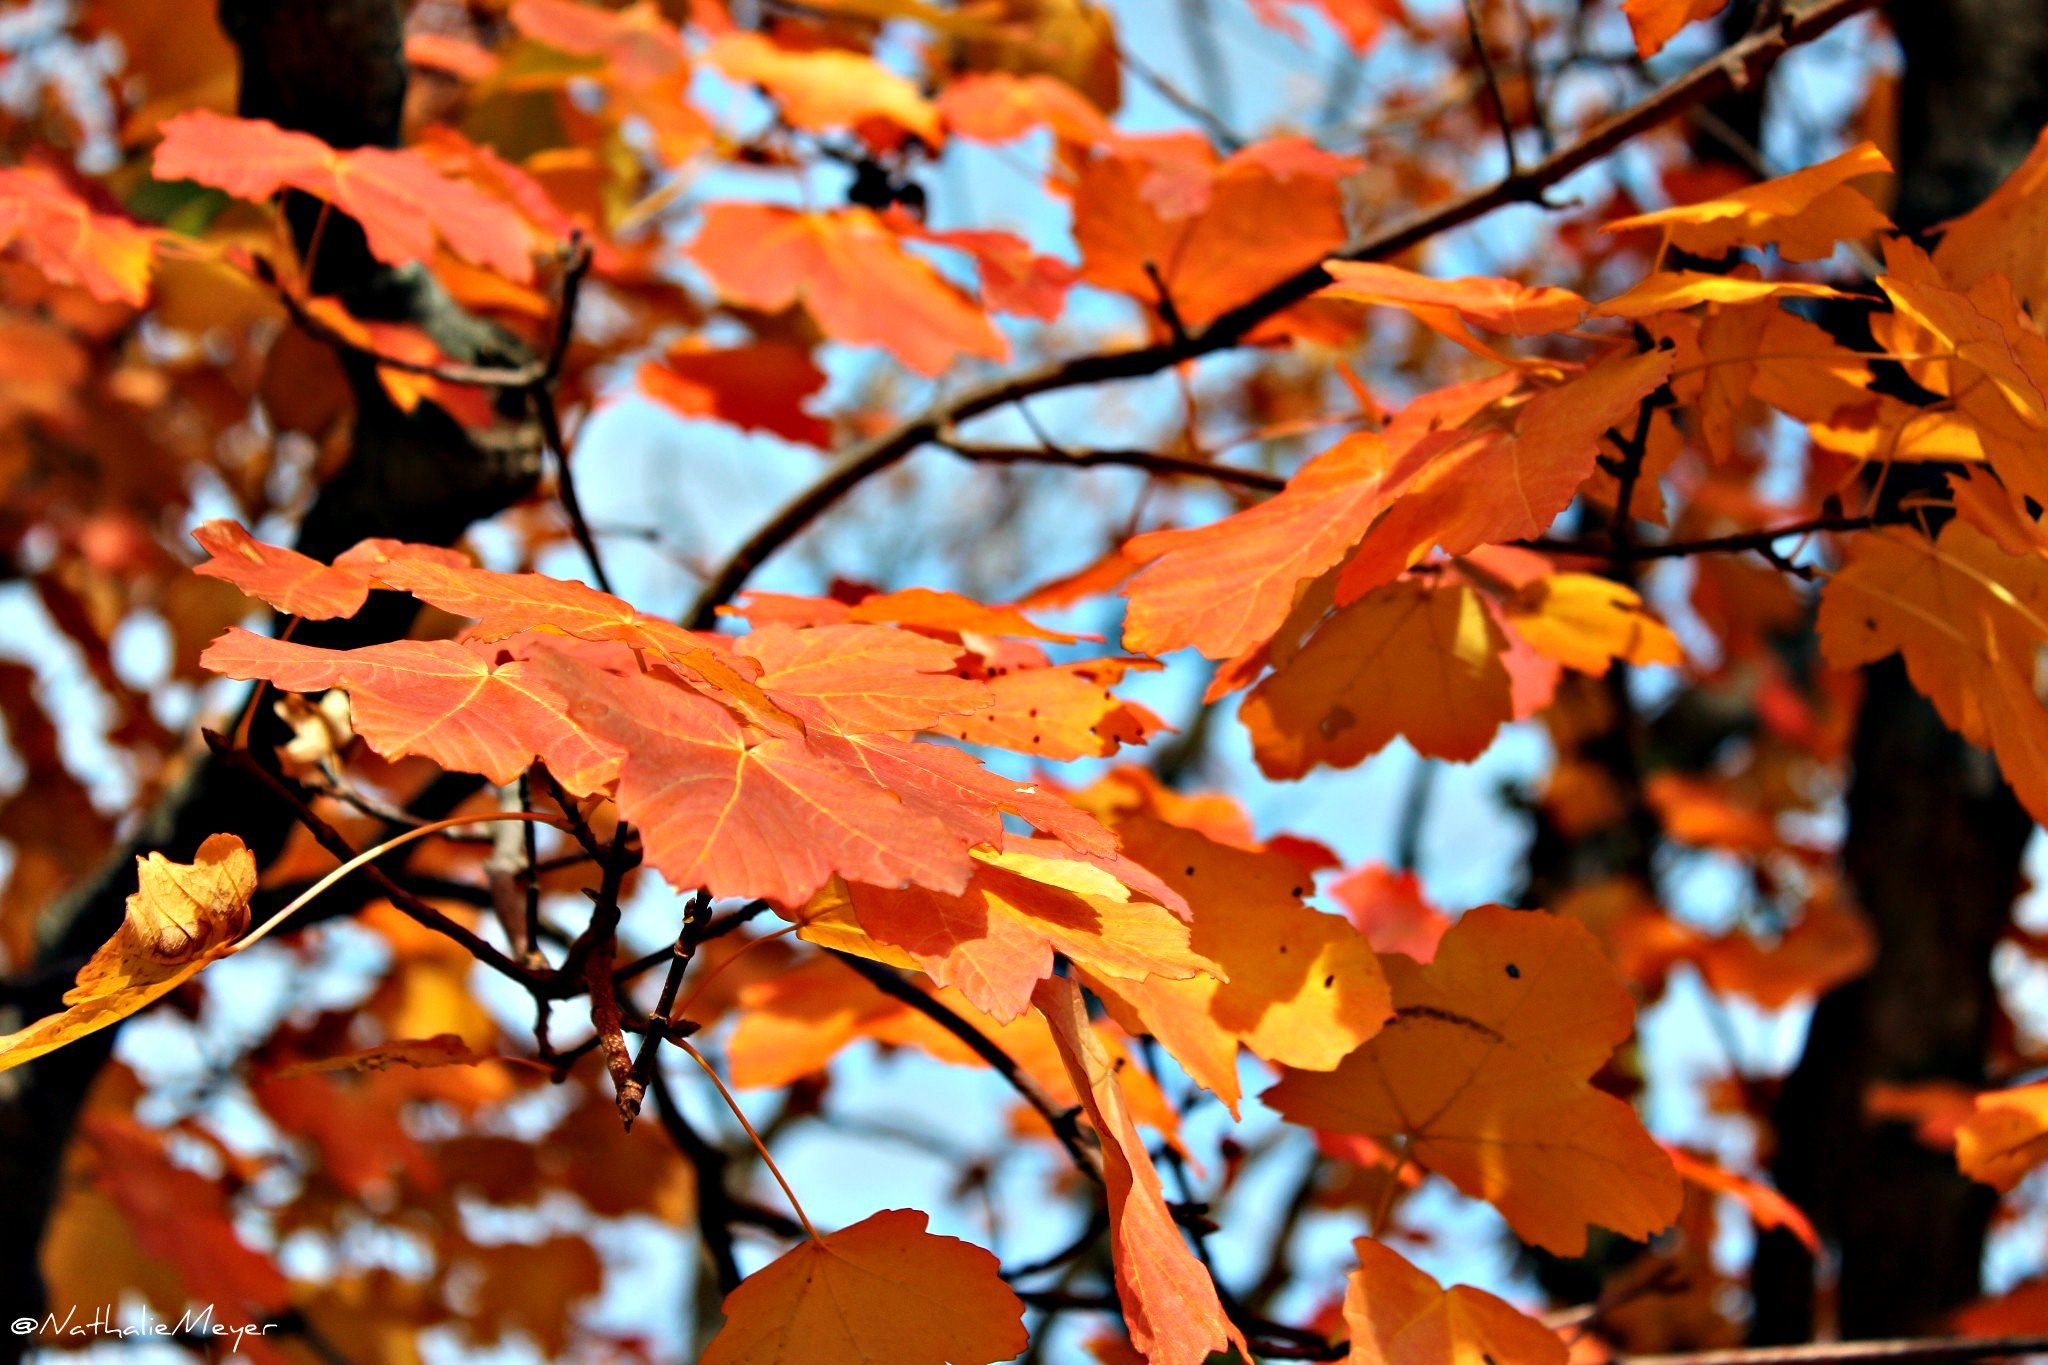 Photograph Autumn leaves by Nathalie Meyer on 500px